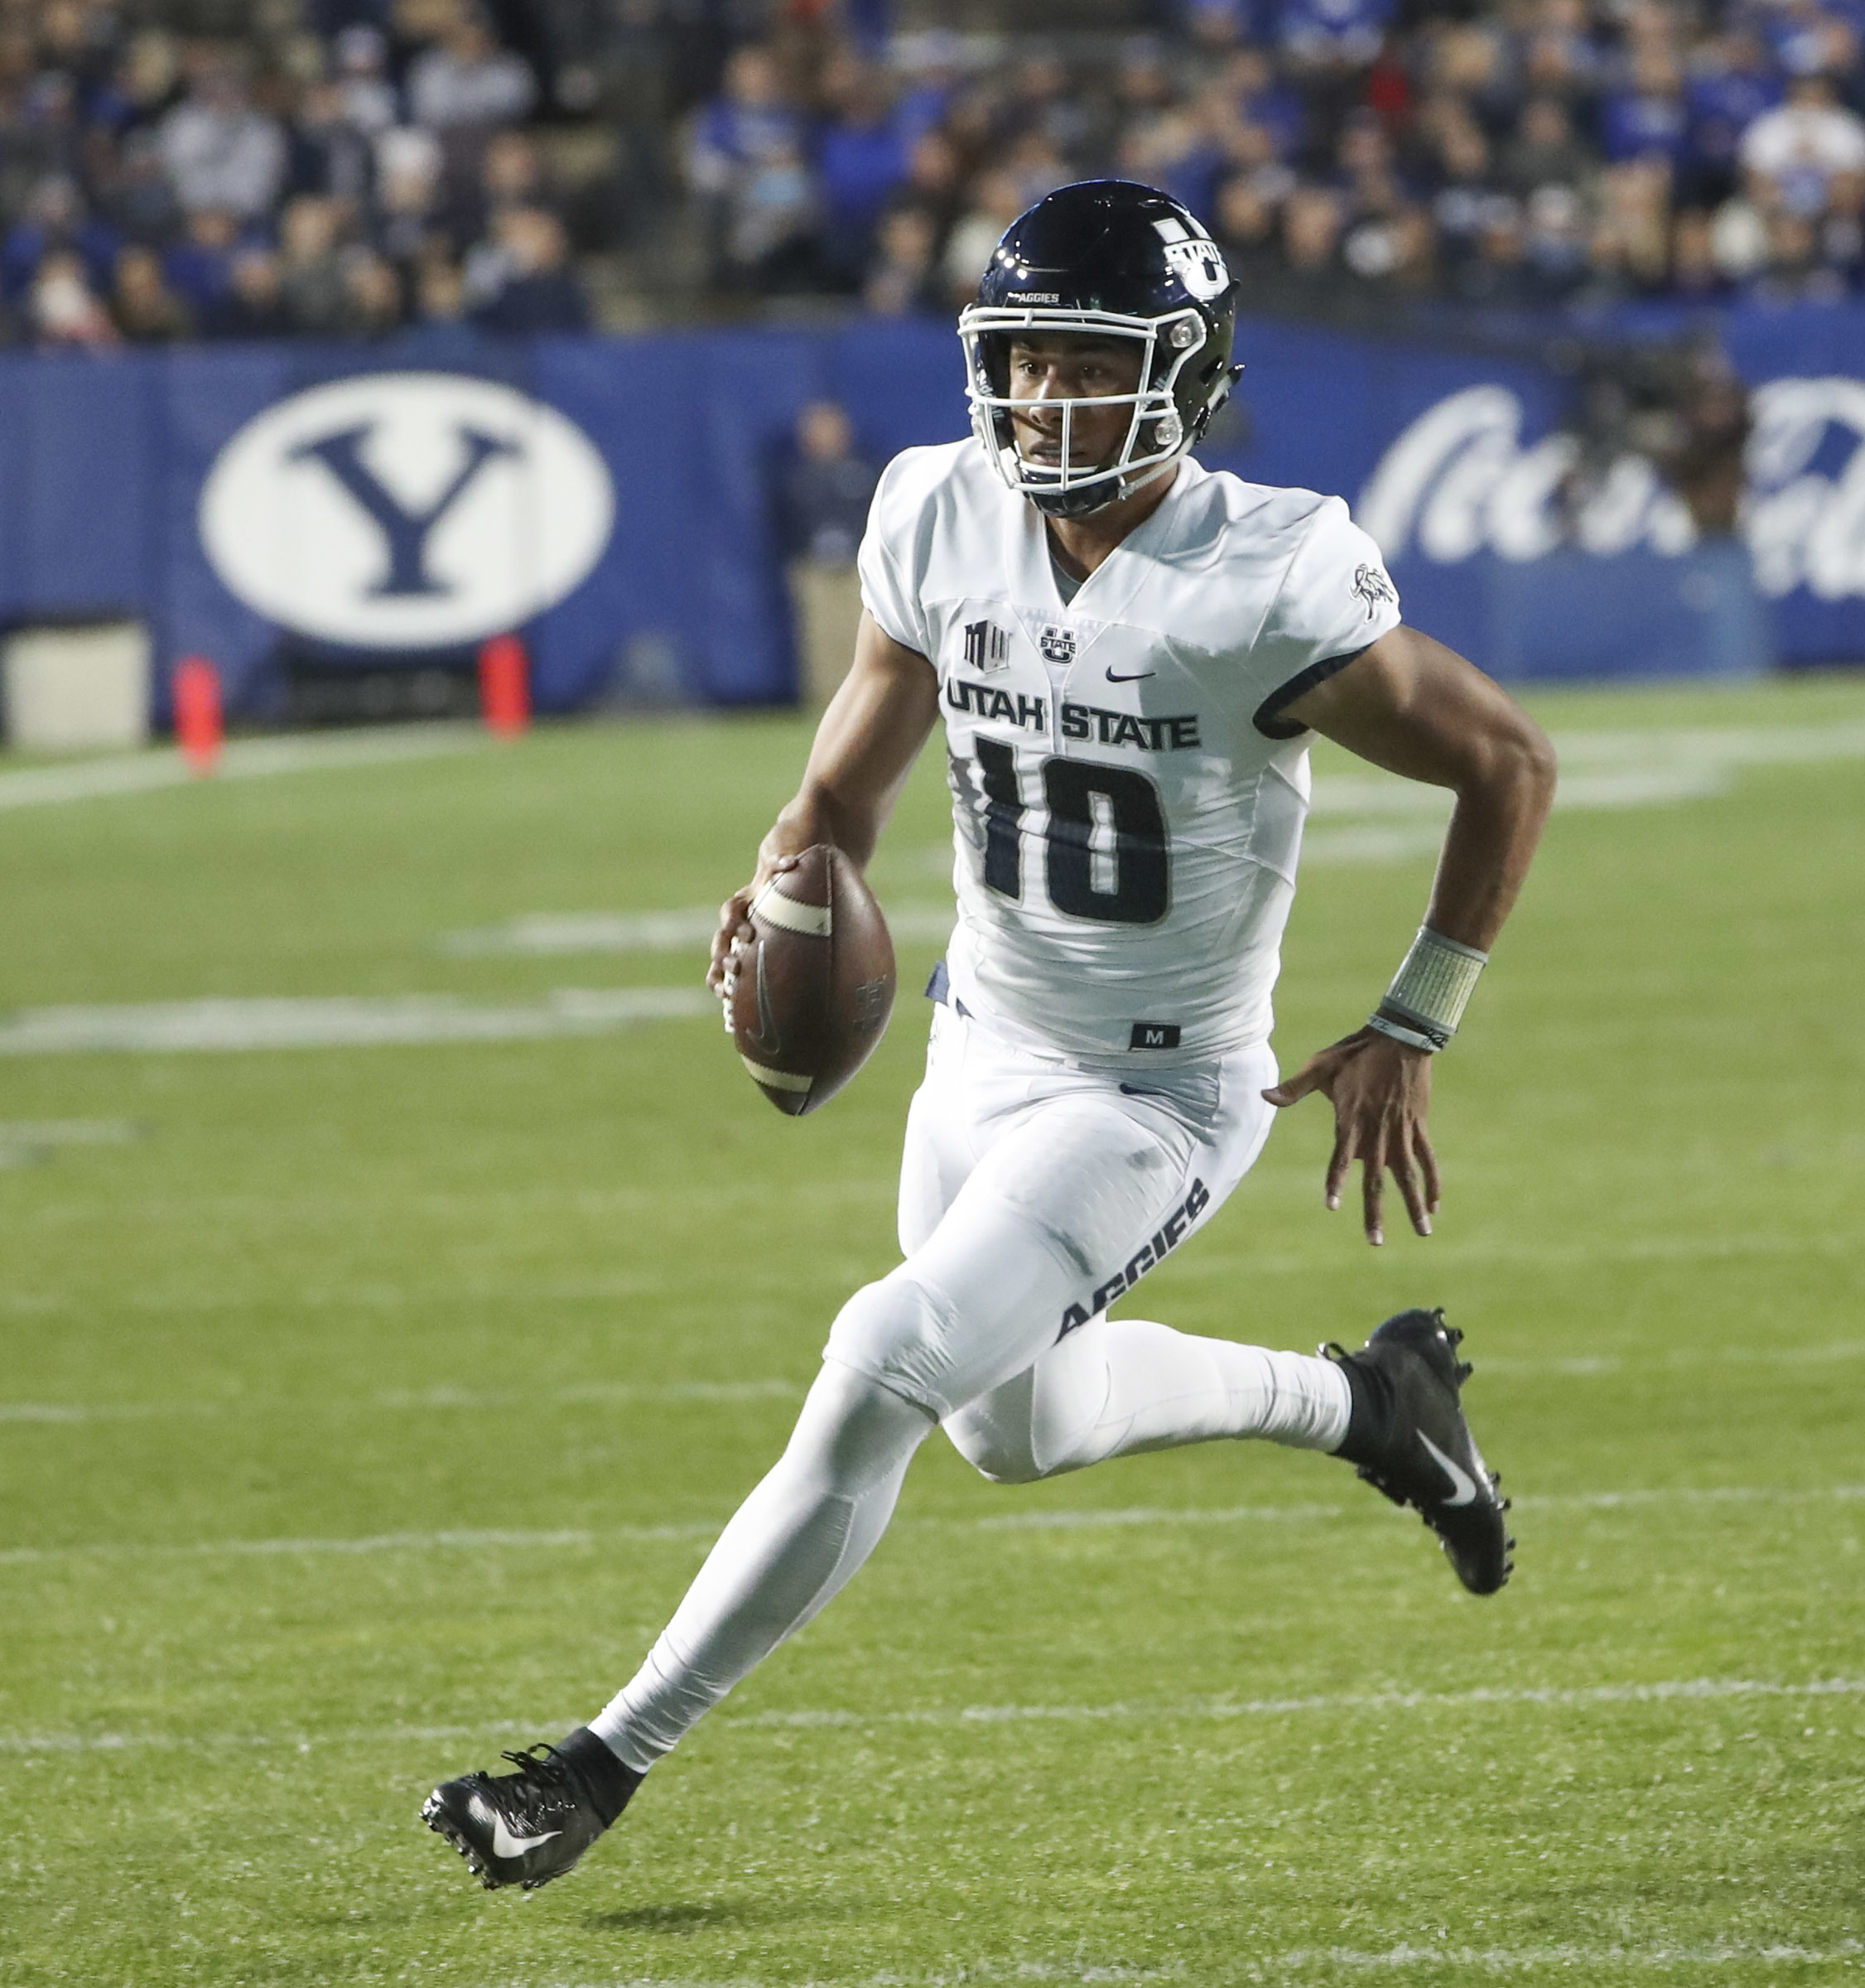 Utah State Aggies quarterback Jordan Love (10) sprints out of the pocket for a big gain during the Utah State versus BYU football game at LaVell Edwards Stadium in Provo on Friday, Oct. 5, 2018.